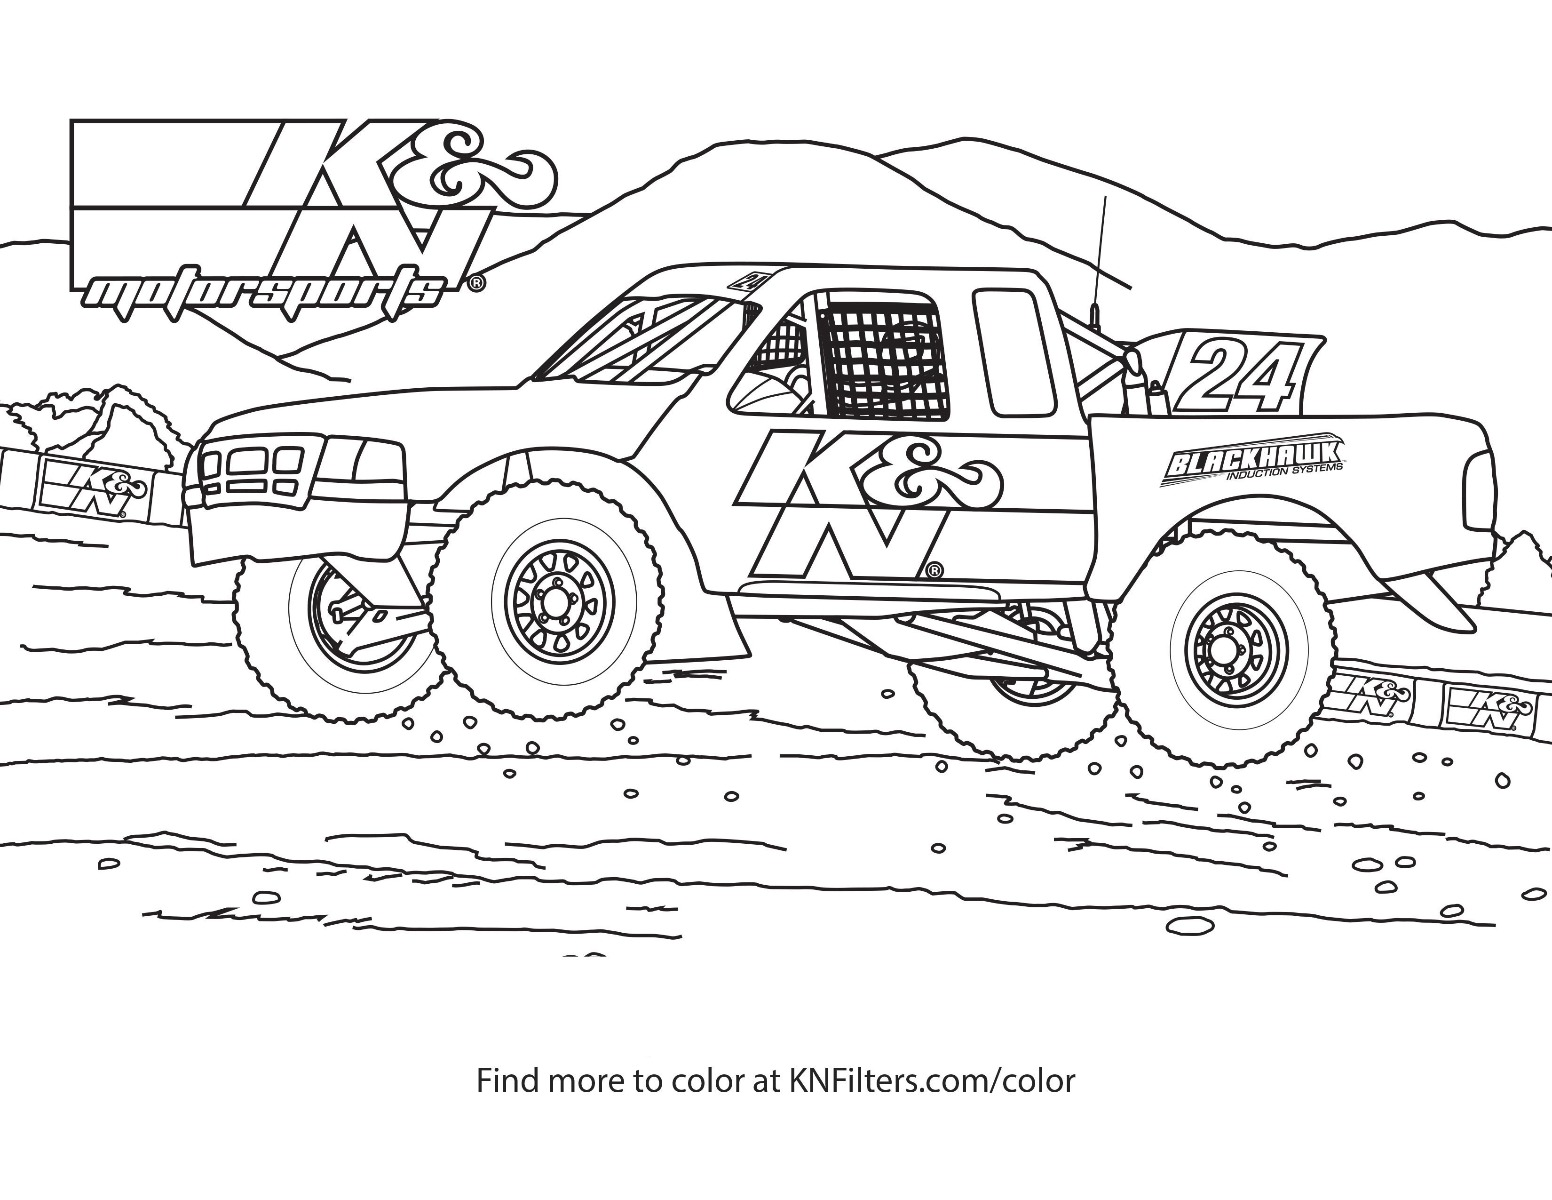 Dodge Ram 5500 coloring page | Free Printable Coloring Pages | 1200x1552